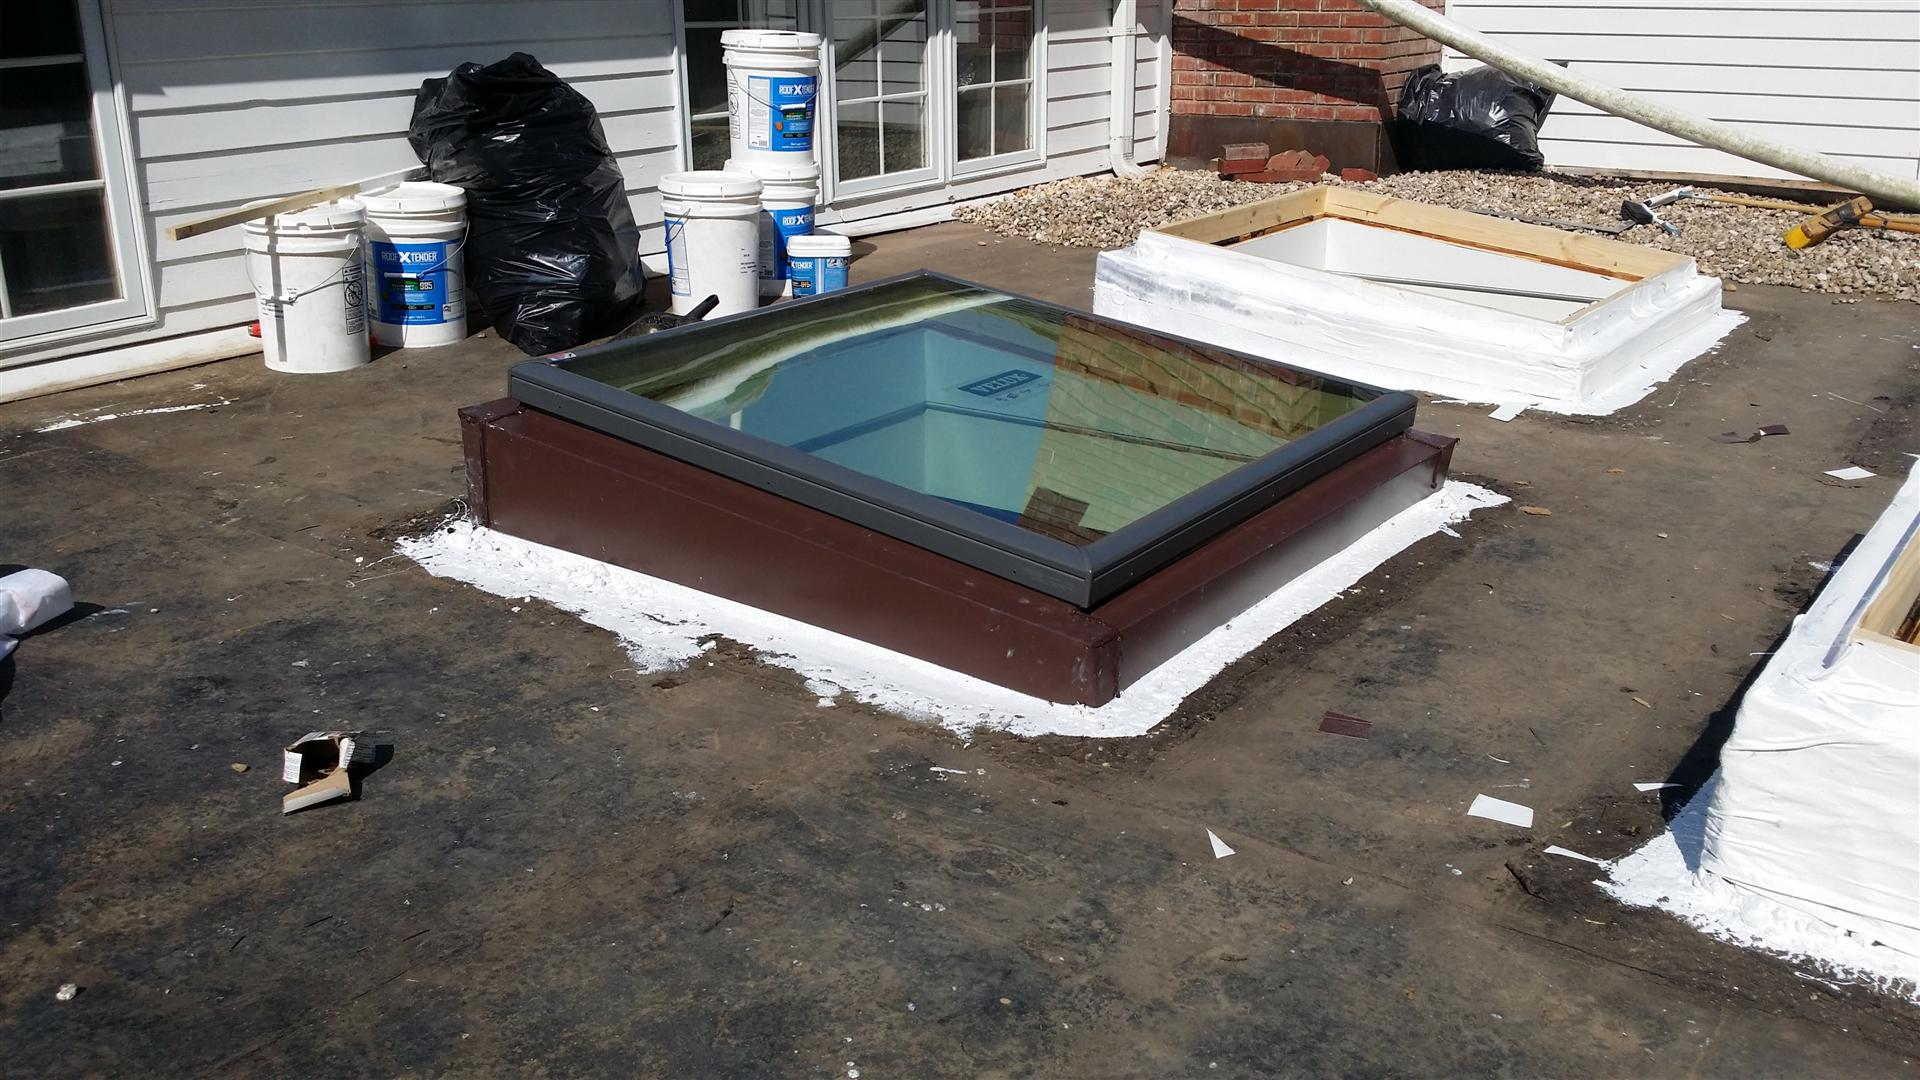 Amazing The Velux Skylights Are Beautiful And Are Perfect For This Flat Roof.